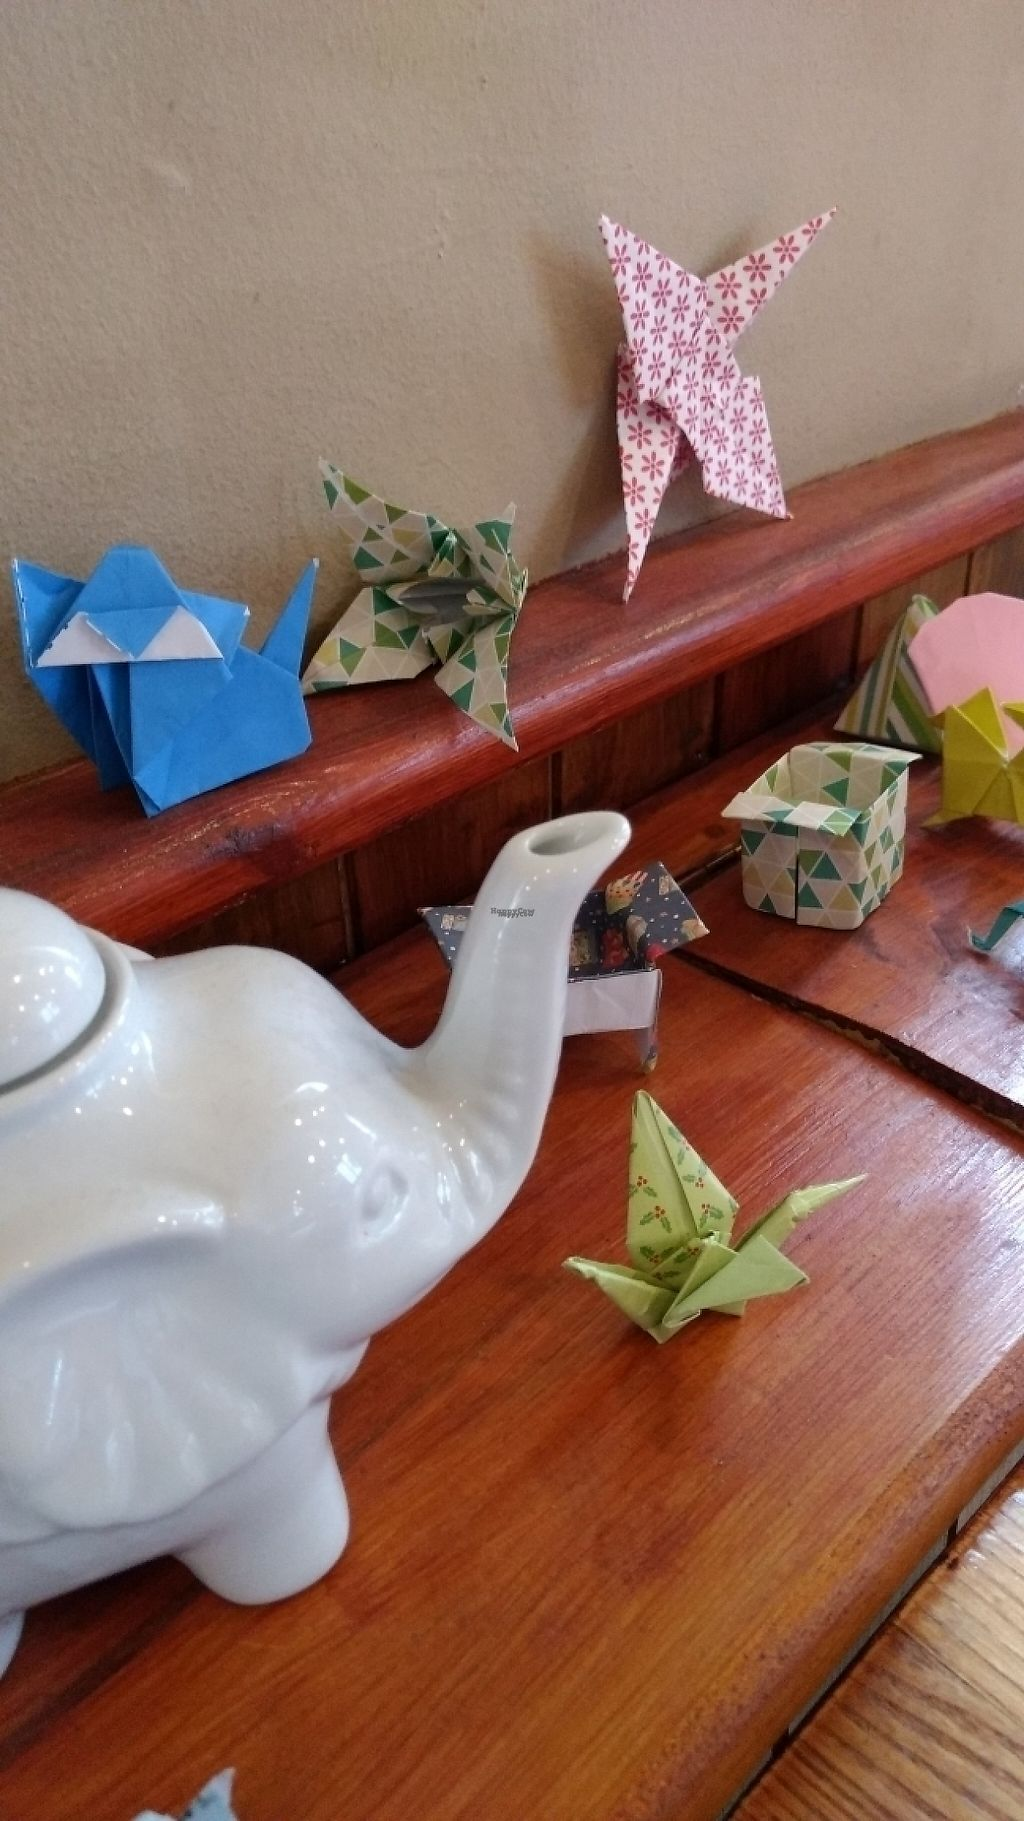 """Photo of Tea Sutra Teahouse  by <a href=""""/members/profile/craigmc"""">craigmc</a> <br/>some origami decor <br/> March 30, 2017  - <a href='/contact/abuse/image/29138/242660'>Report</a>"""